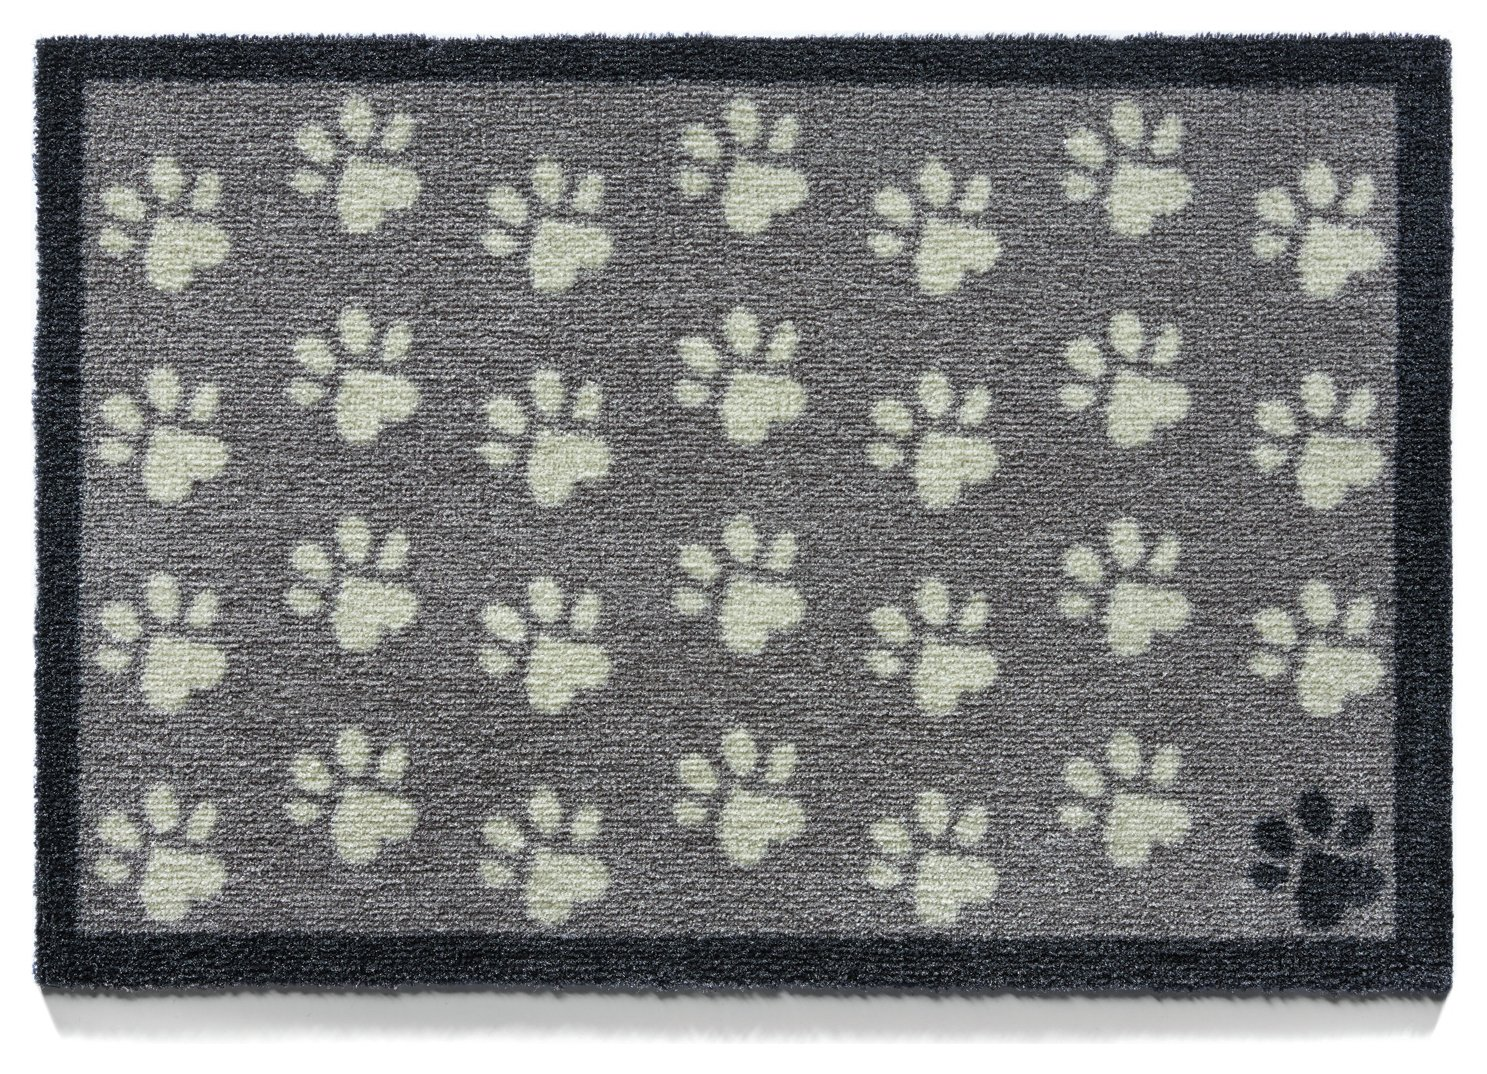 howler-scratch-small-paws-doormat-75x50cm-grey